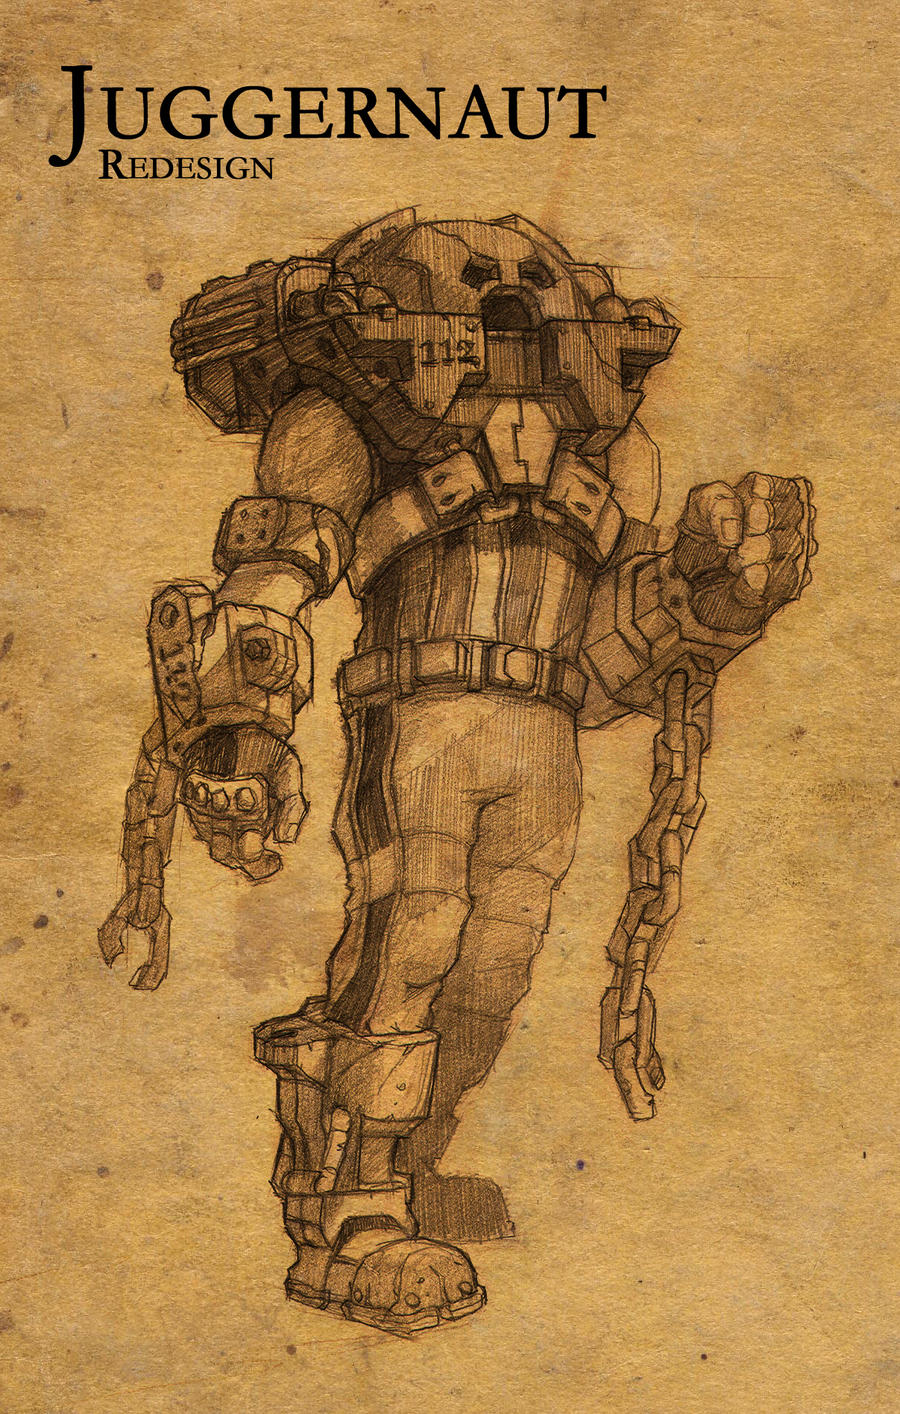 Juggernaut Redesign by faxtar